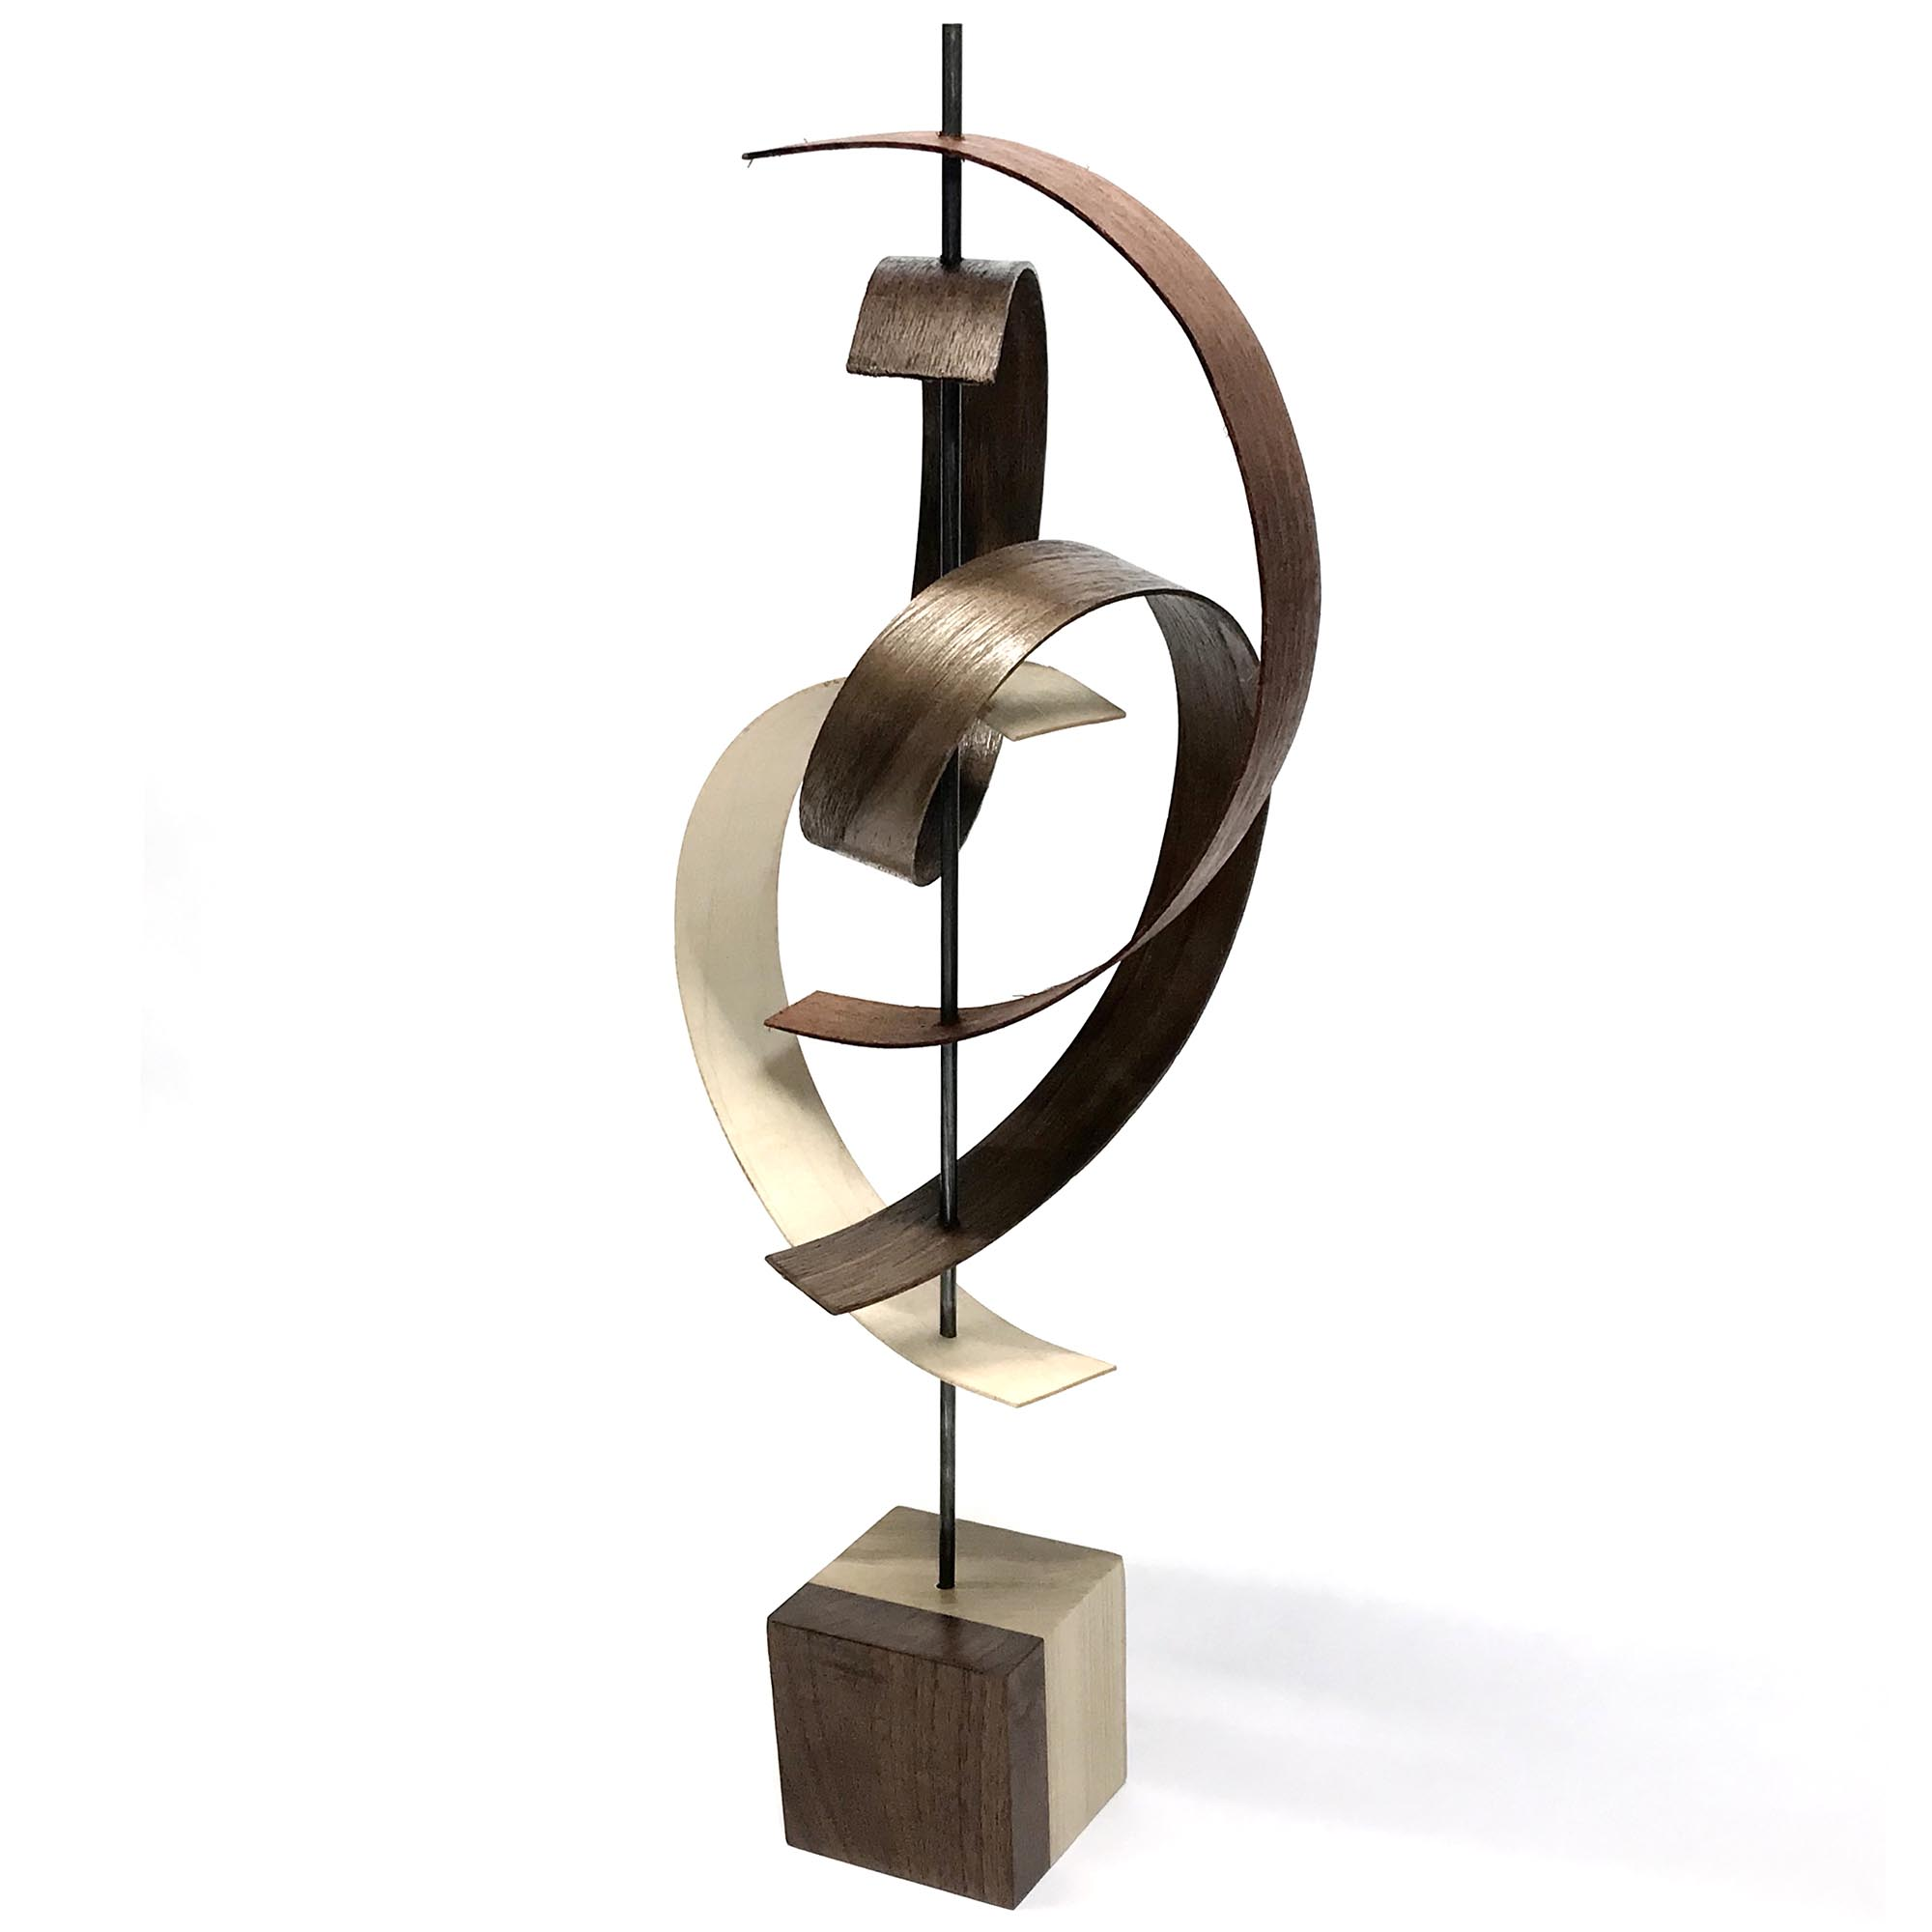 Jackson Wright 'Swing' 8in x 19in Contemporary Style Modern Wood Sculpture